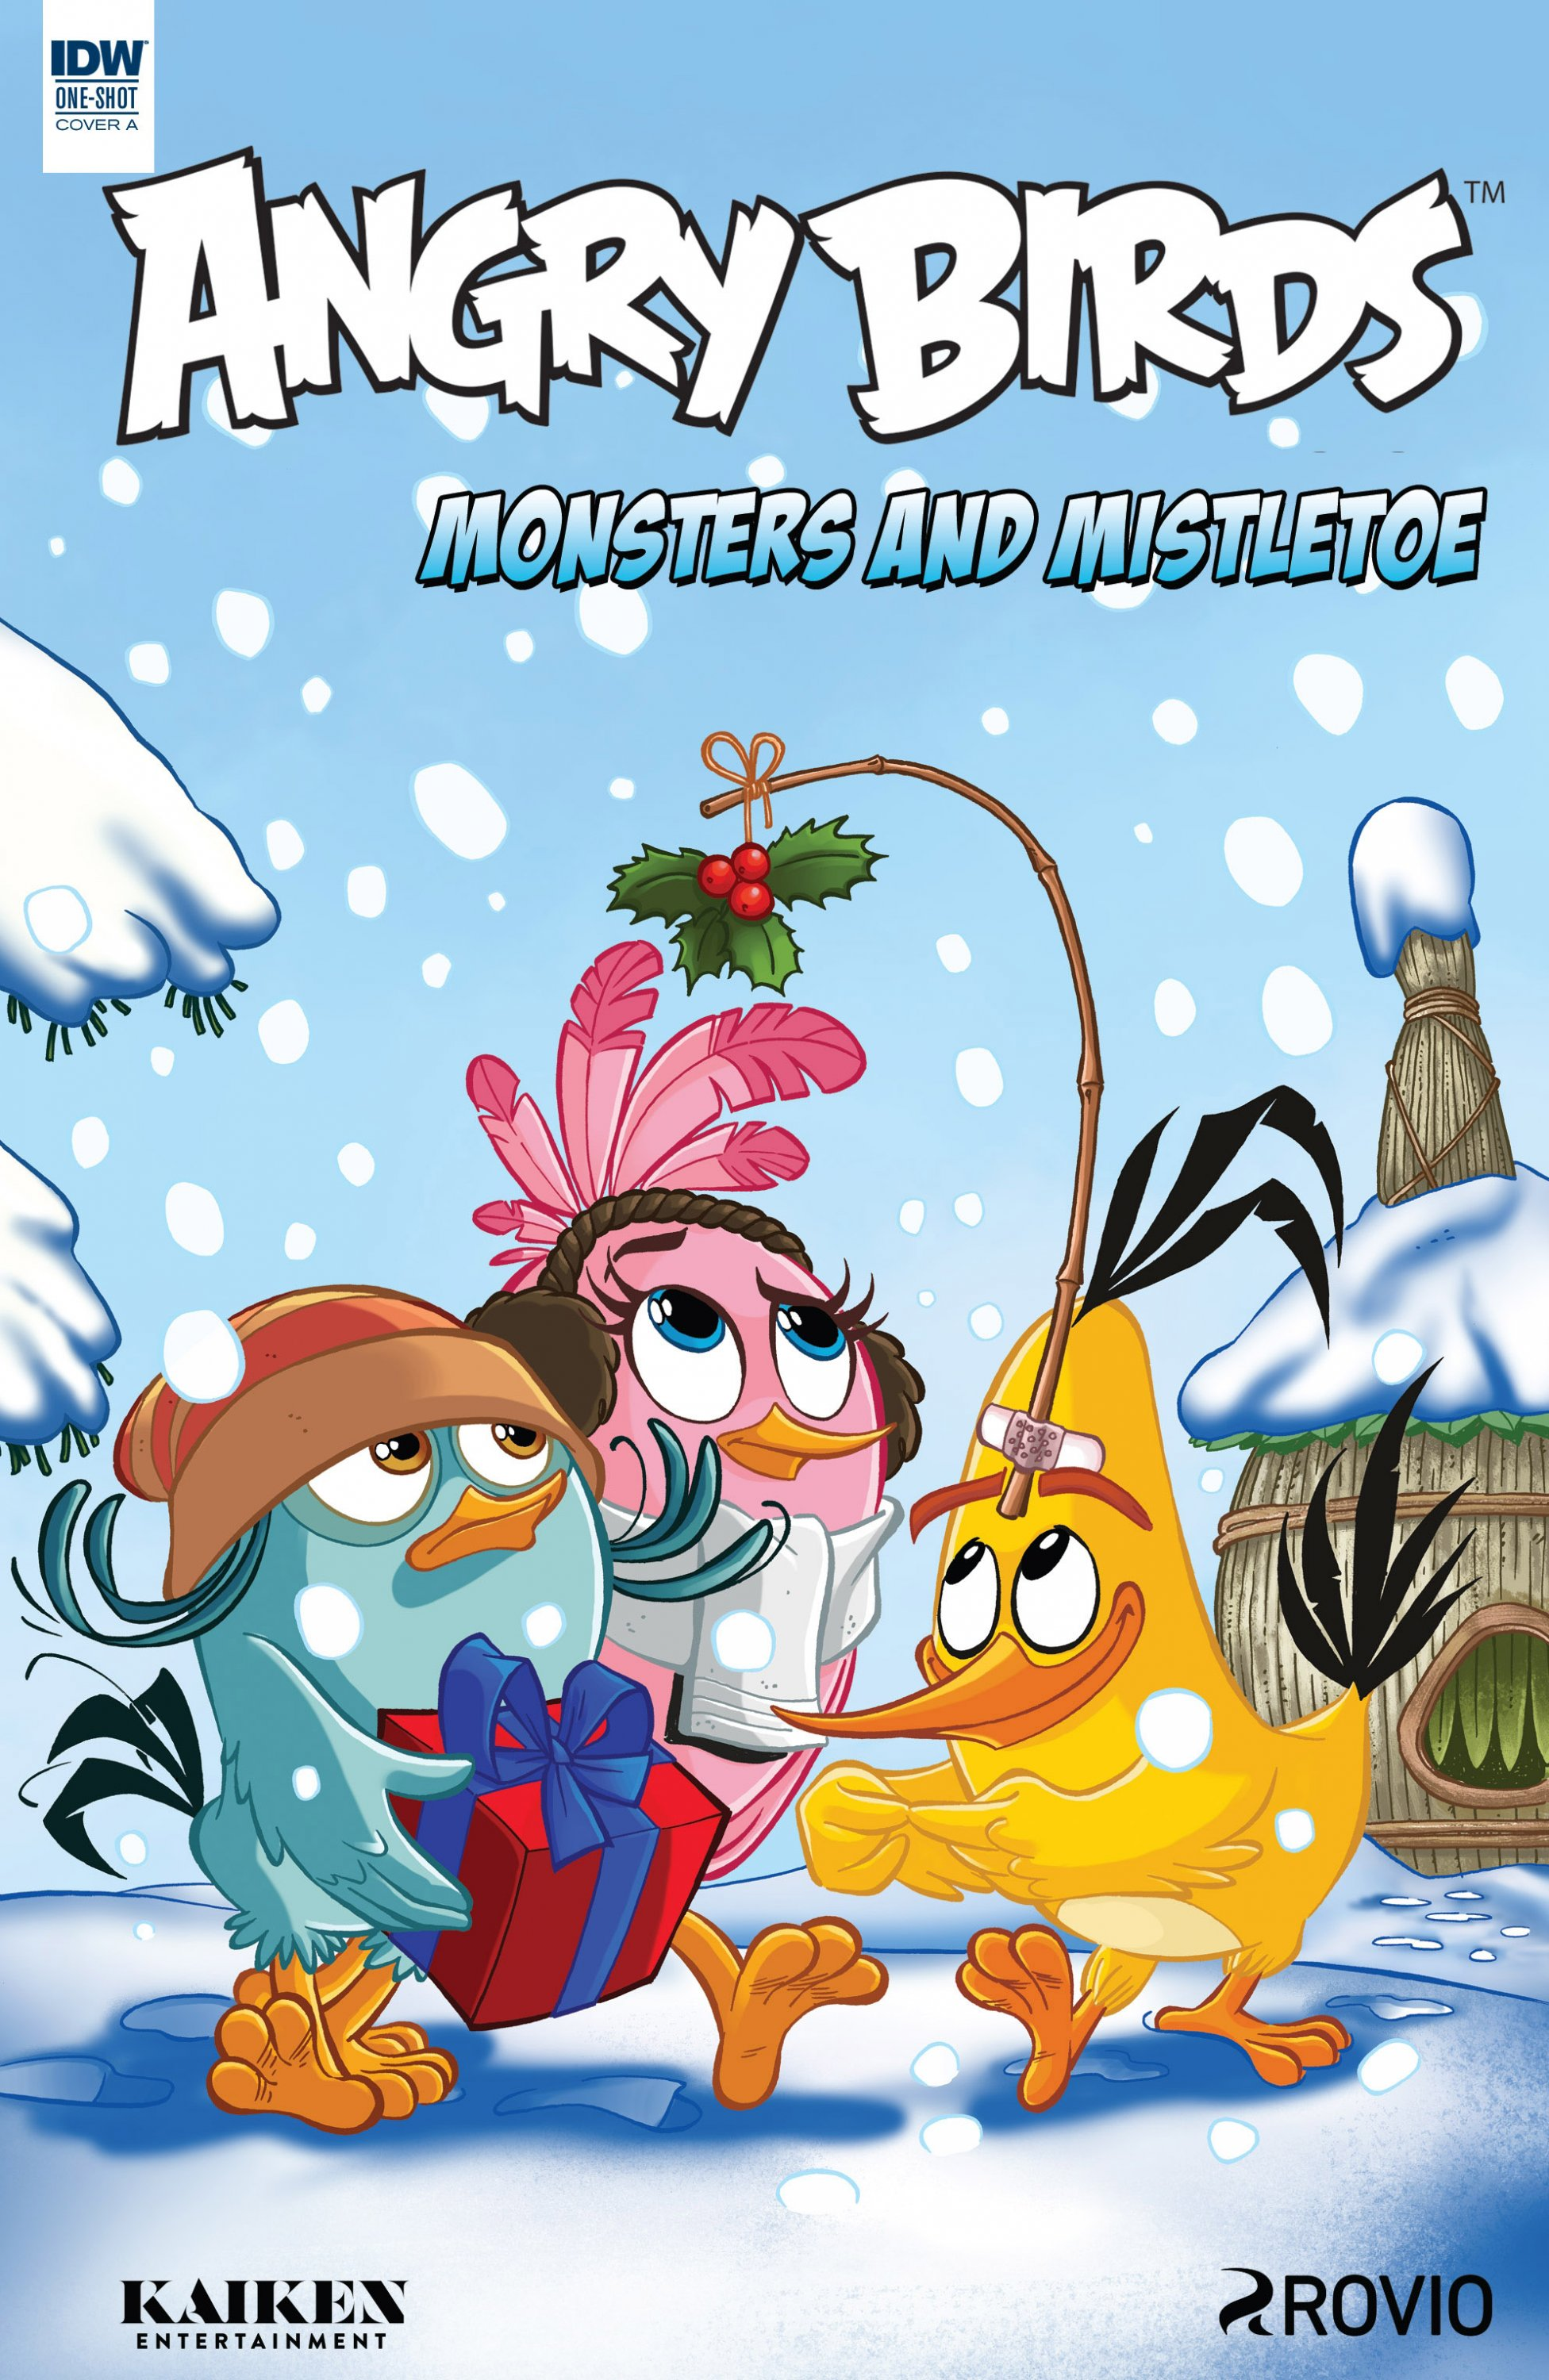 Angry Birds Comics Quarterly - Monsters & Mistletoe (December 2017) (cover a)